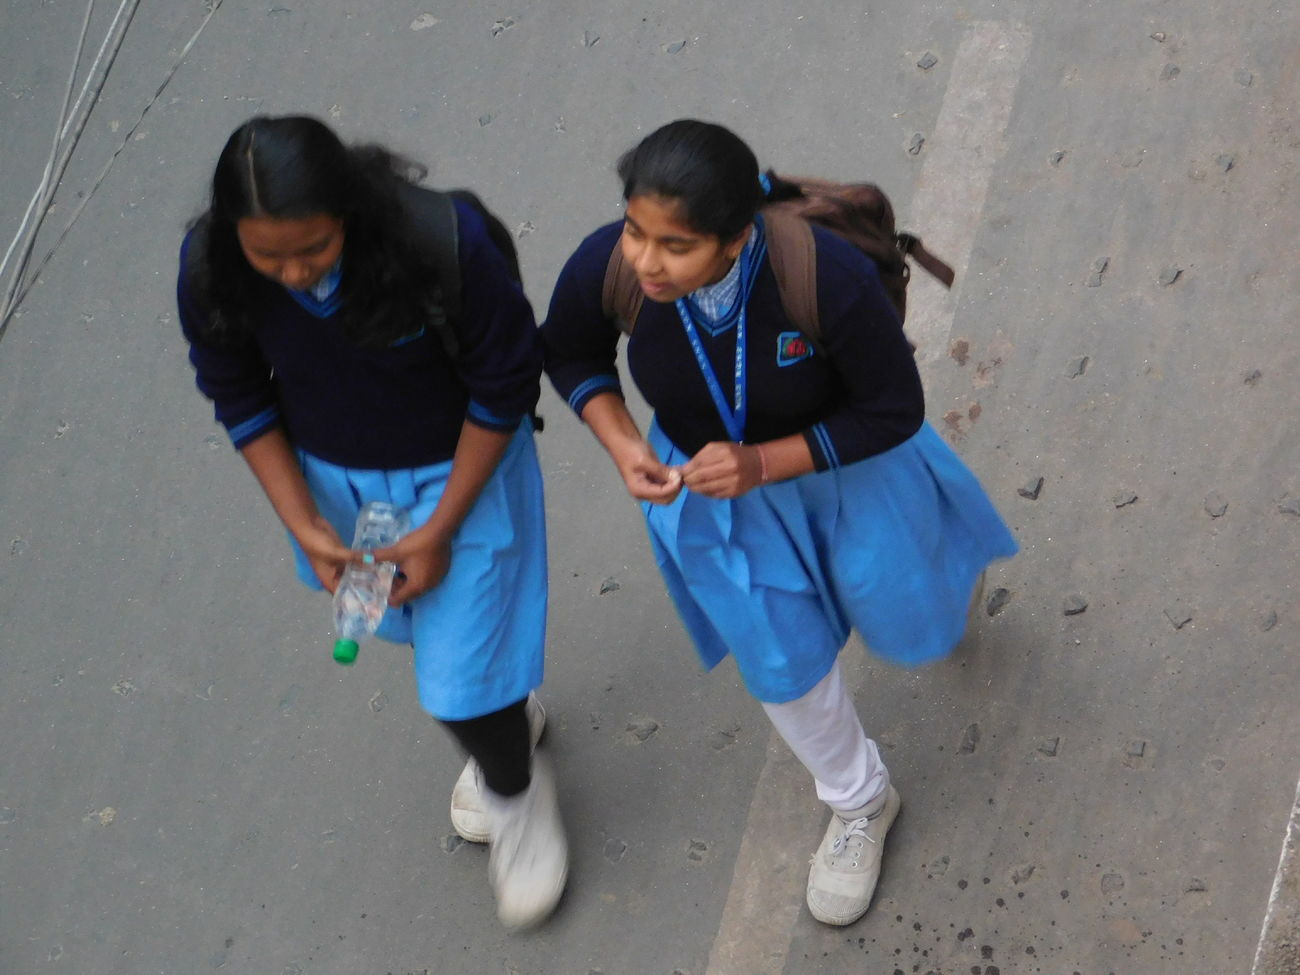 School Uniforms Around The World On The Way Home Friends India